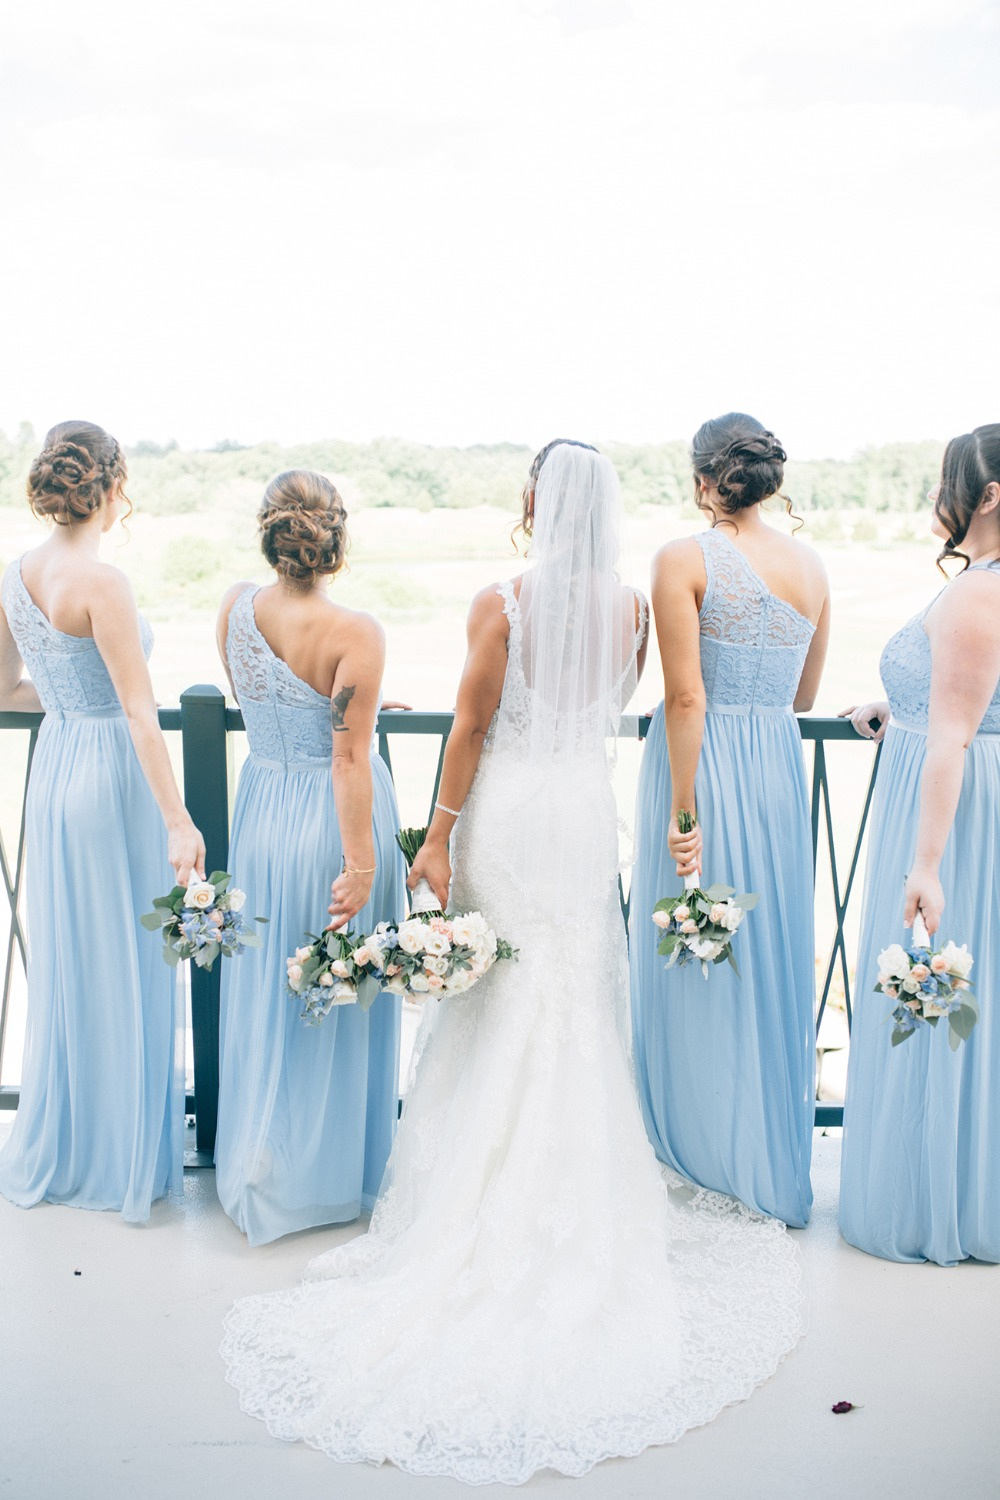 How To Have A Classic Summer Wedding In Ice Blue